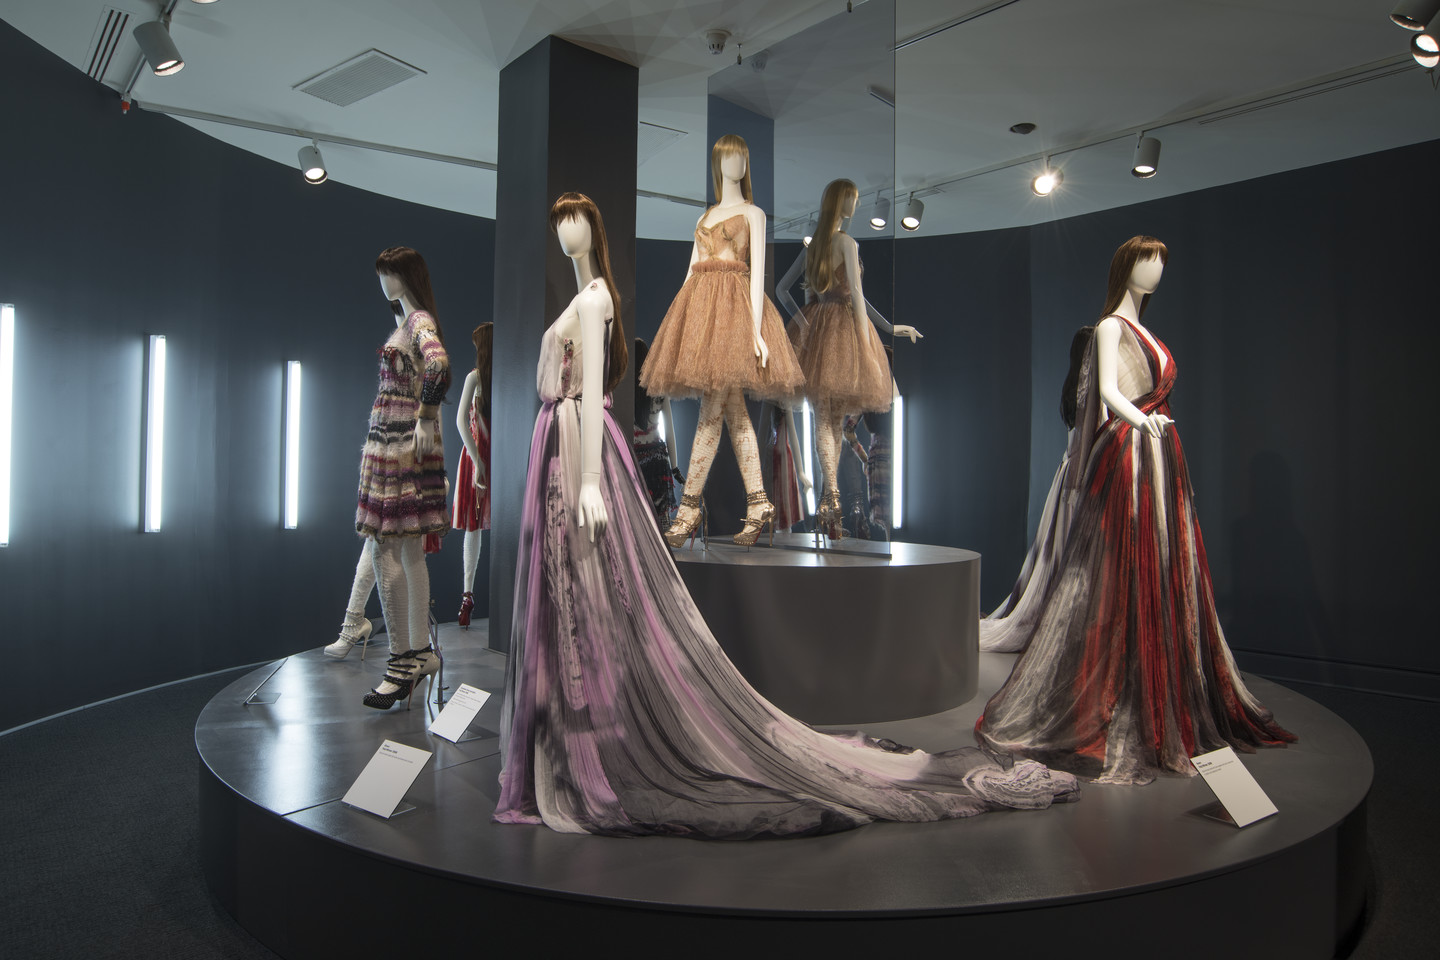 Four light skin mannequins display fashionable gowns of varying length on a circular platform.